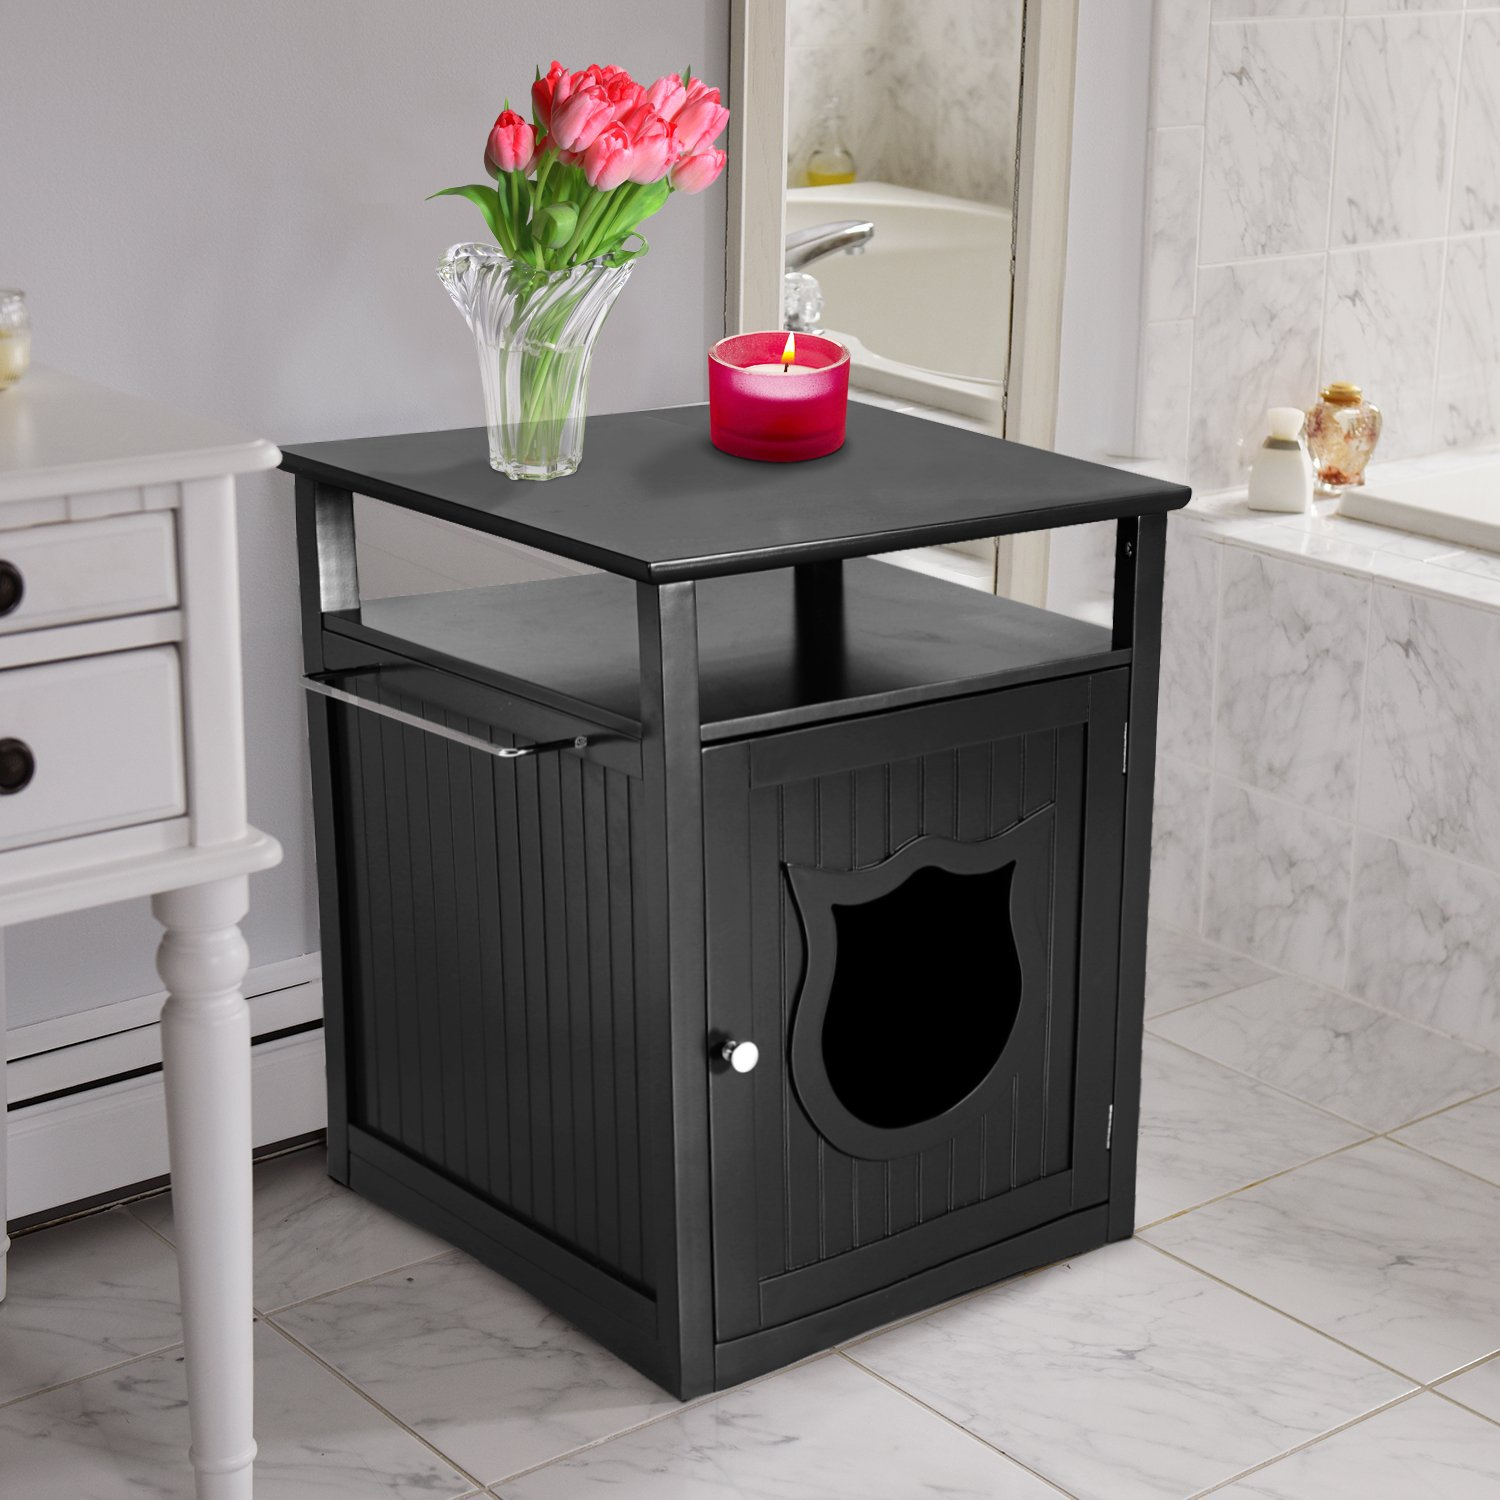 Nightstand Pet House, Litter Box Furniture Indoor Pet Crate, Litter Box Enclosure, Cat Washroom, Black,